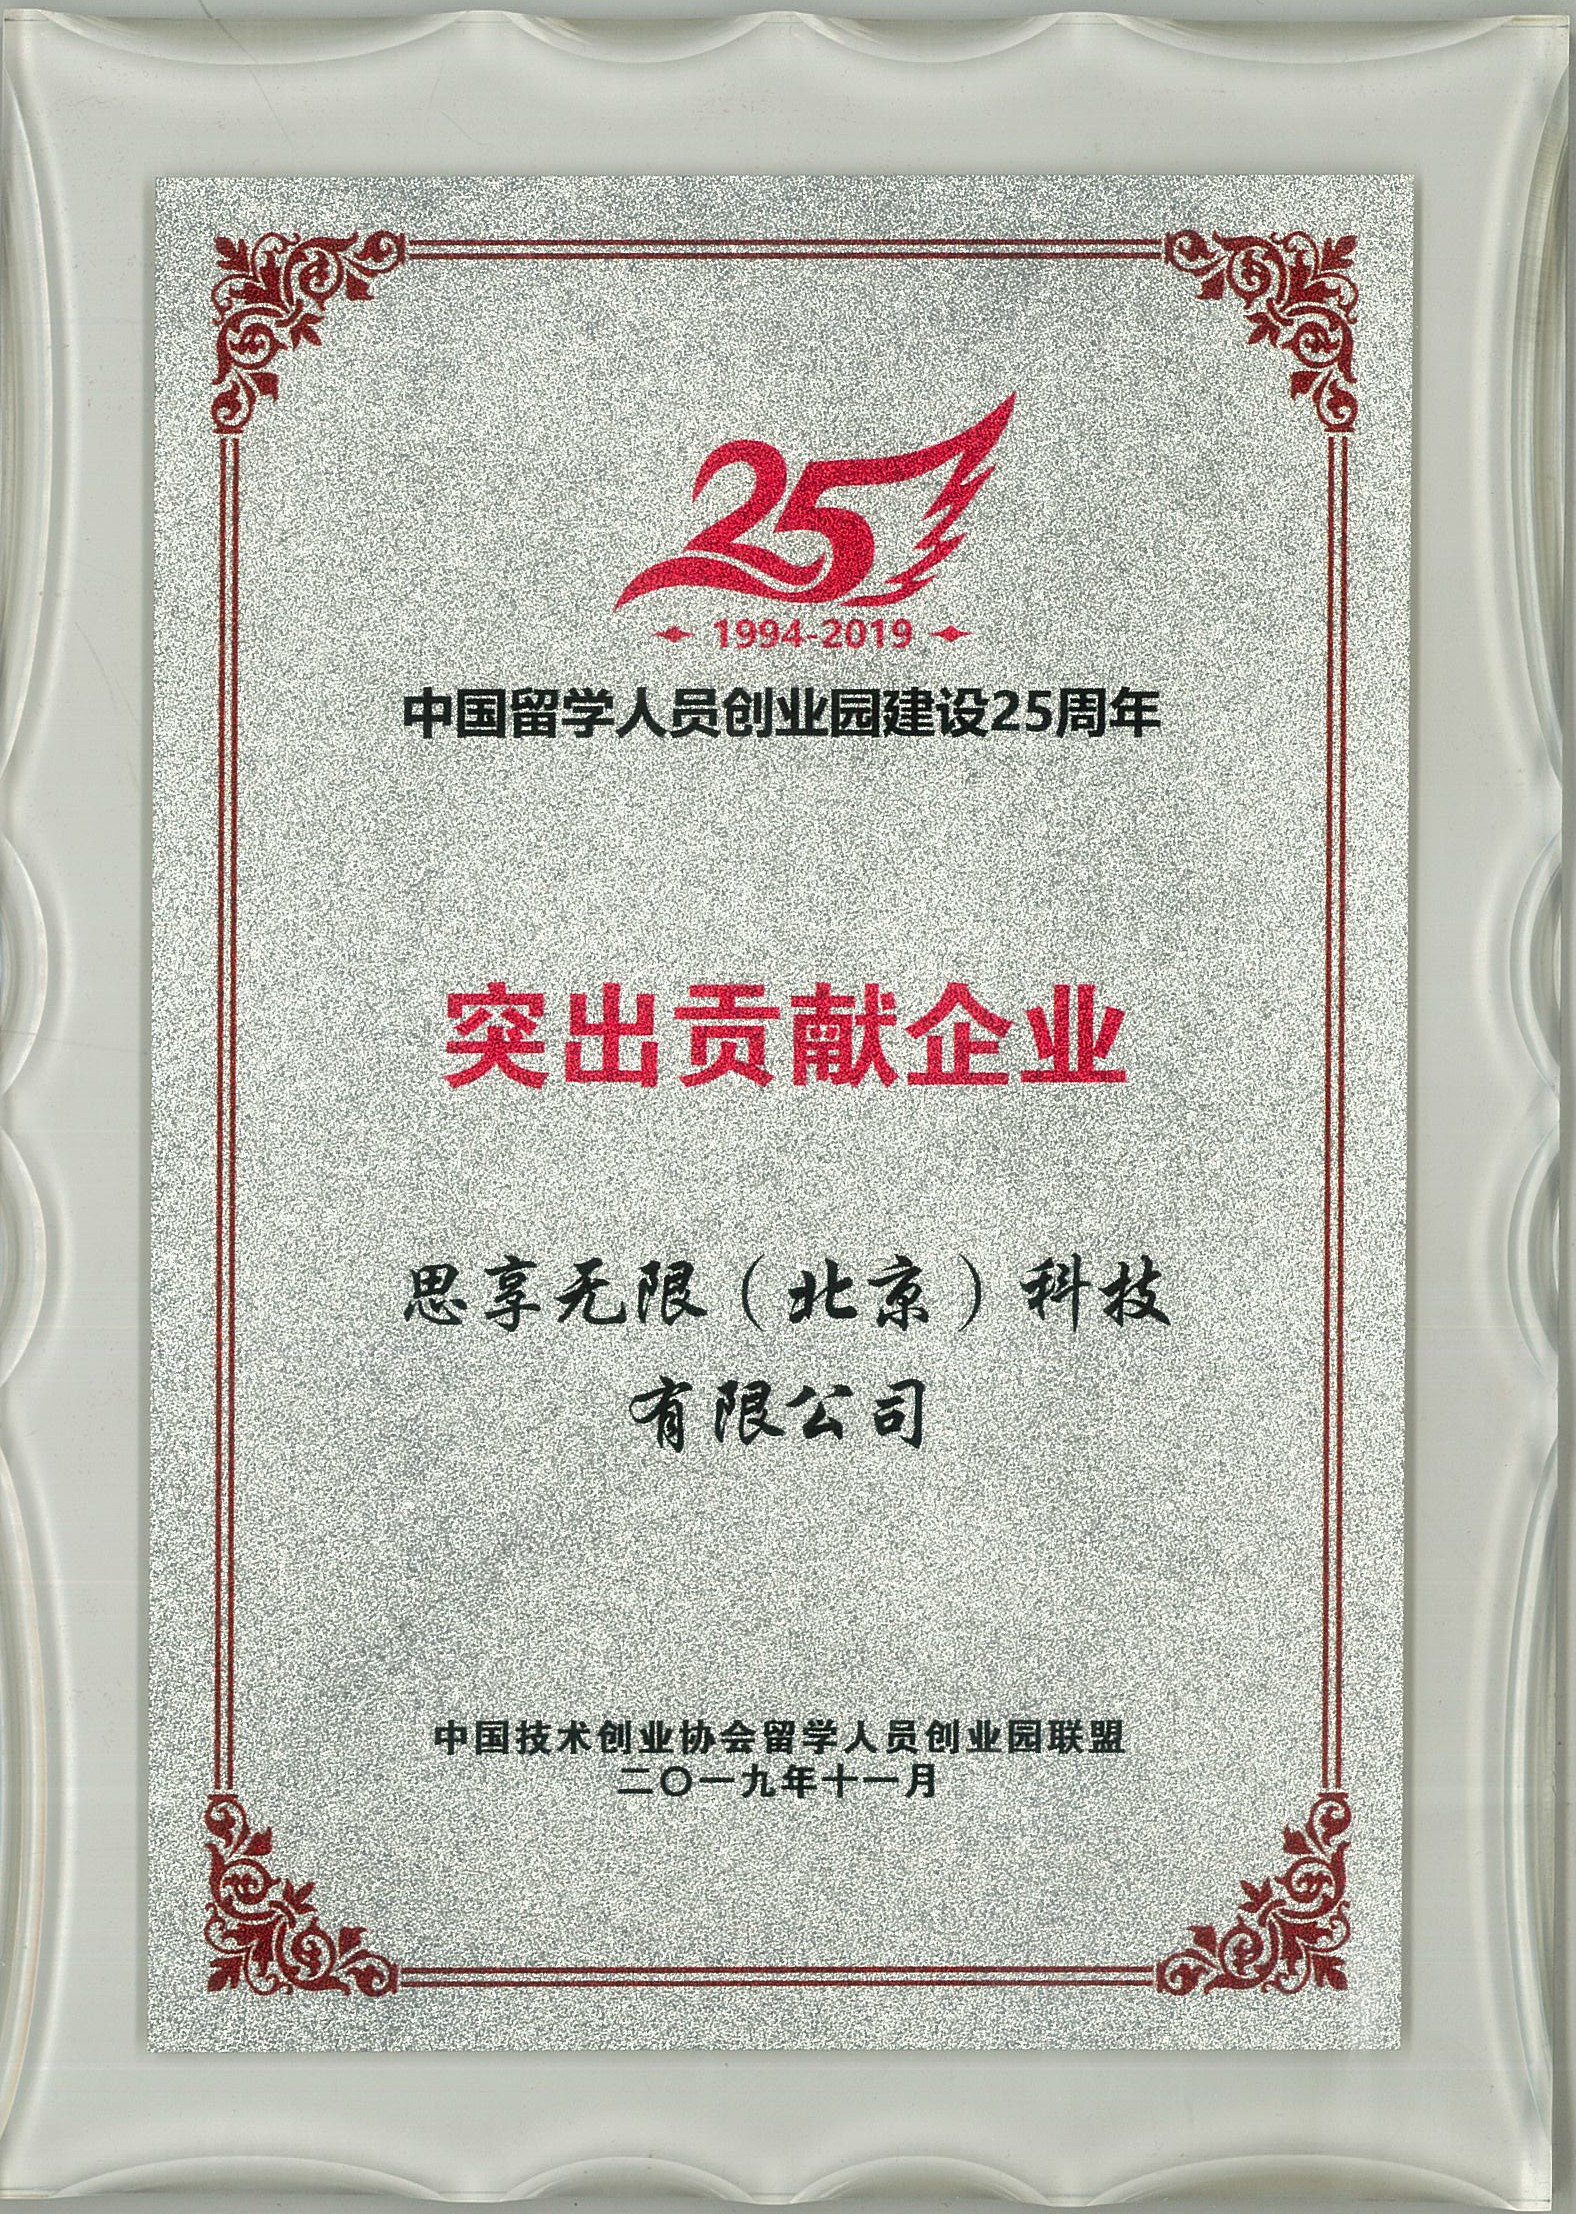 """""""Enterprise with Outstanding Contribution"""" in the 25th Anniversary of the Pioneer Park for Chinese Overseas Students"""